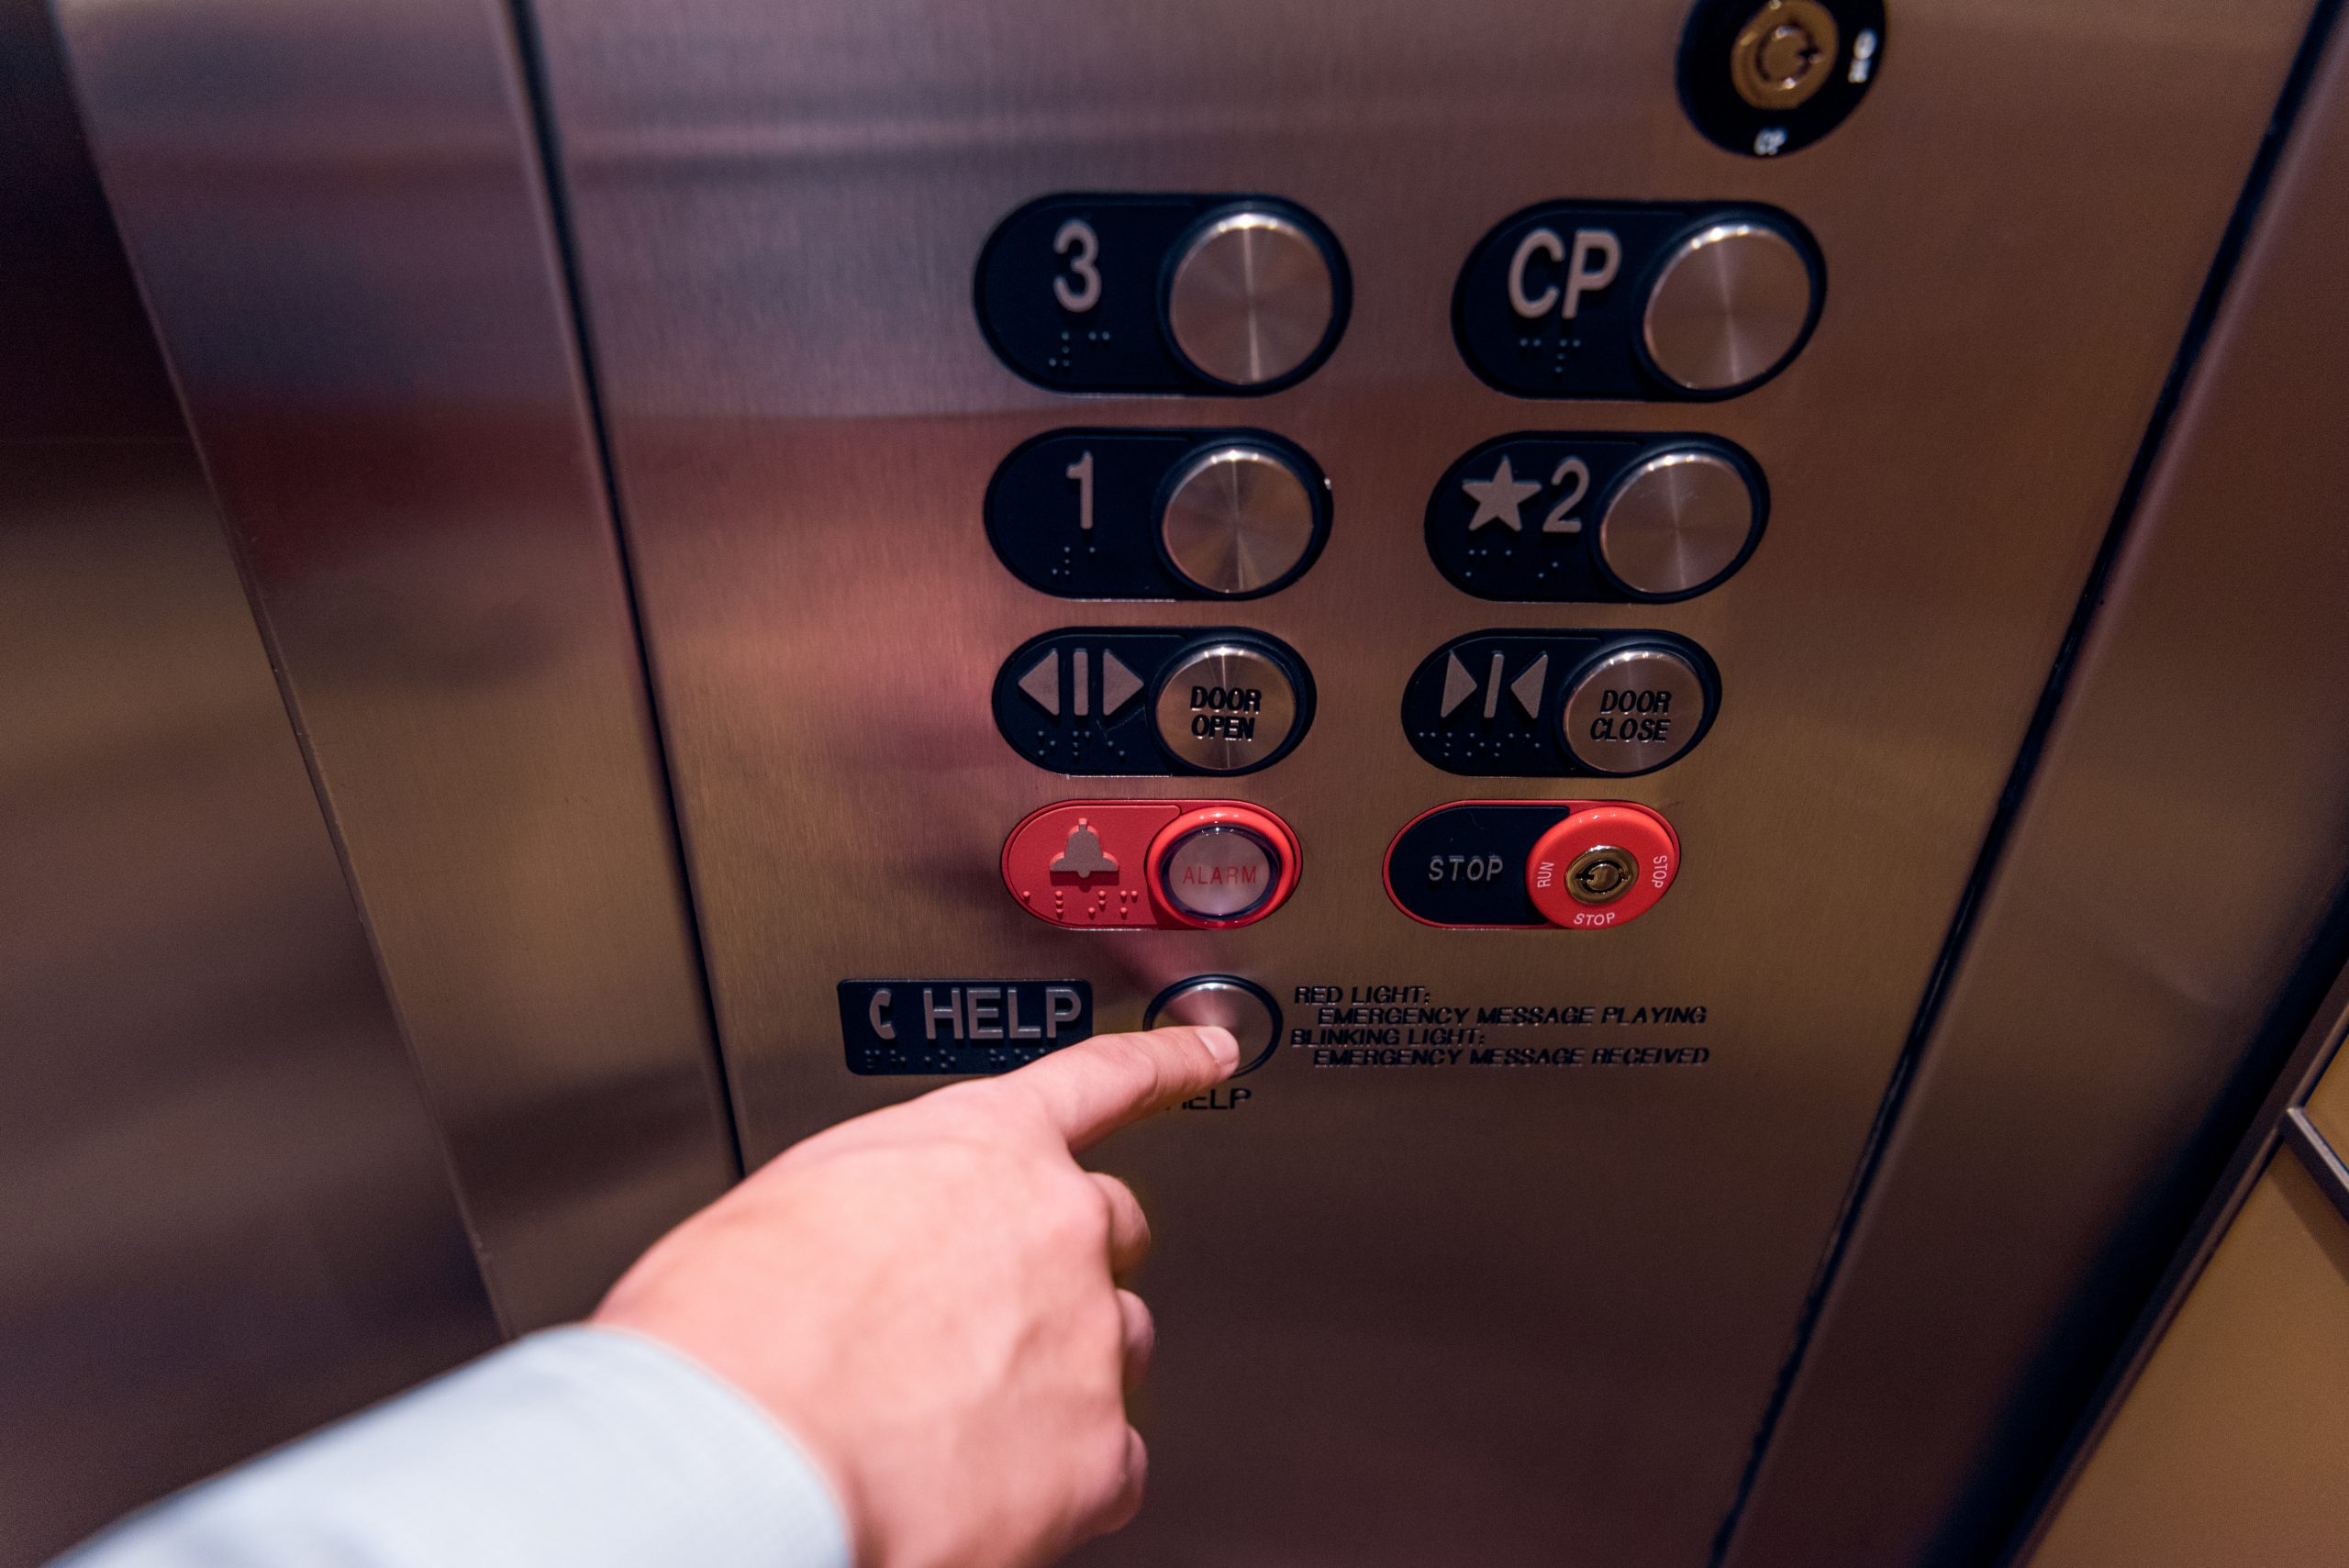 Woman Trapped in NYC Elevator for 3 Days : What We Can Learn